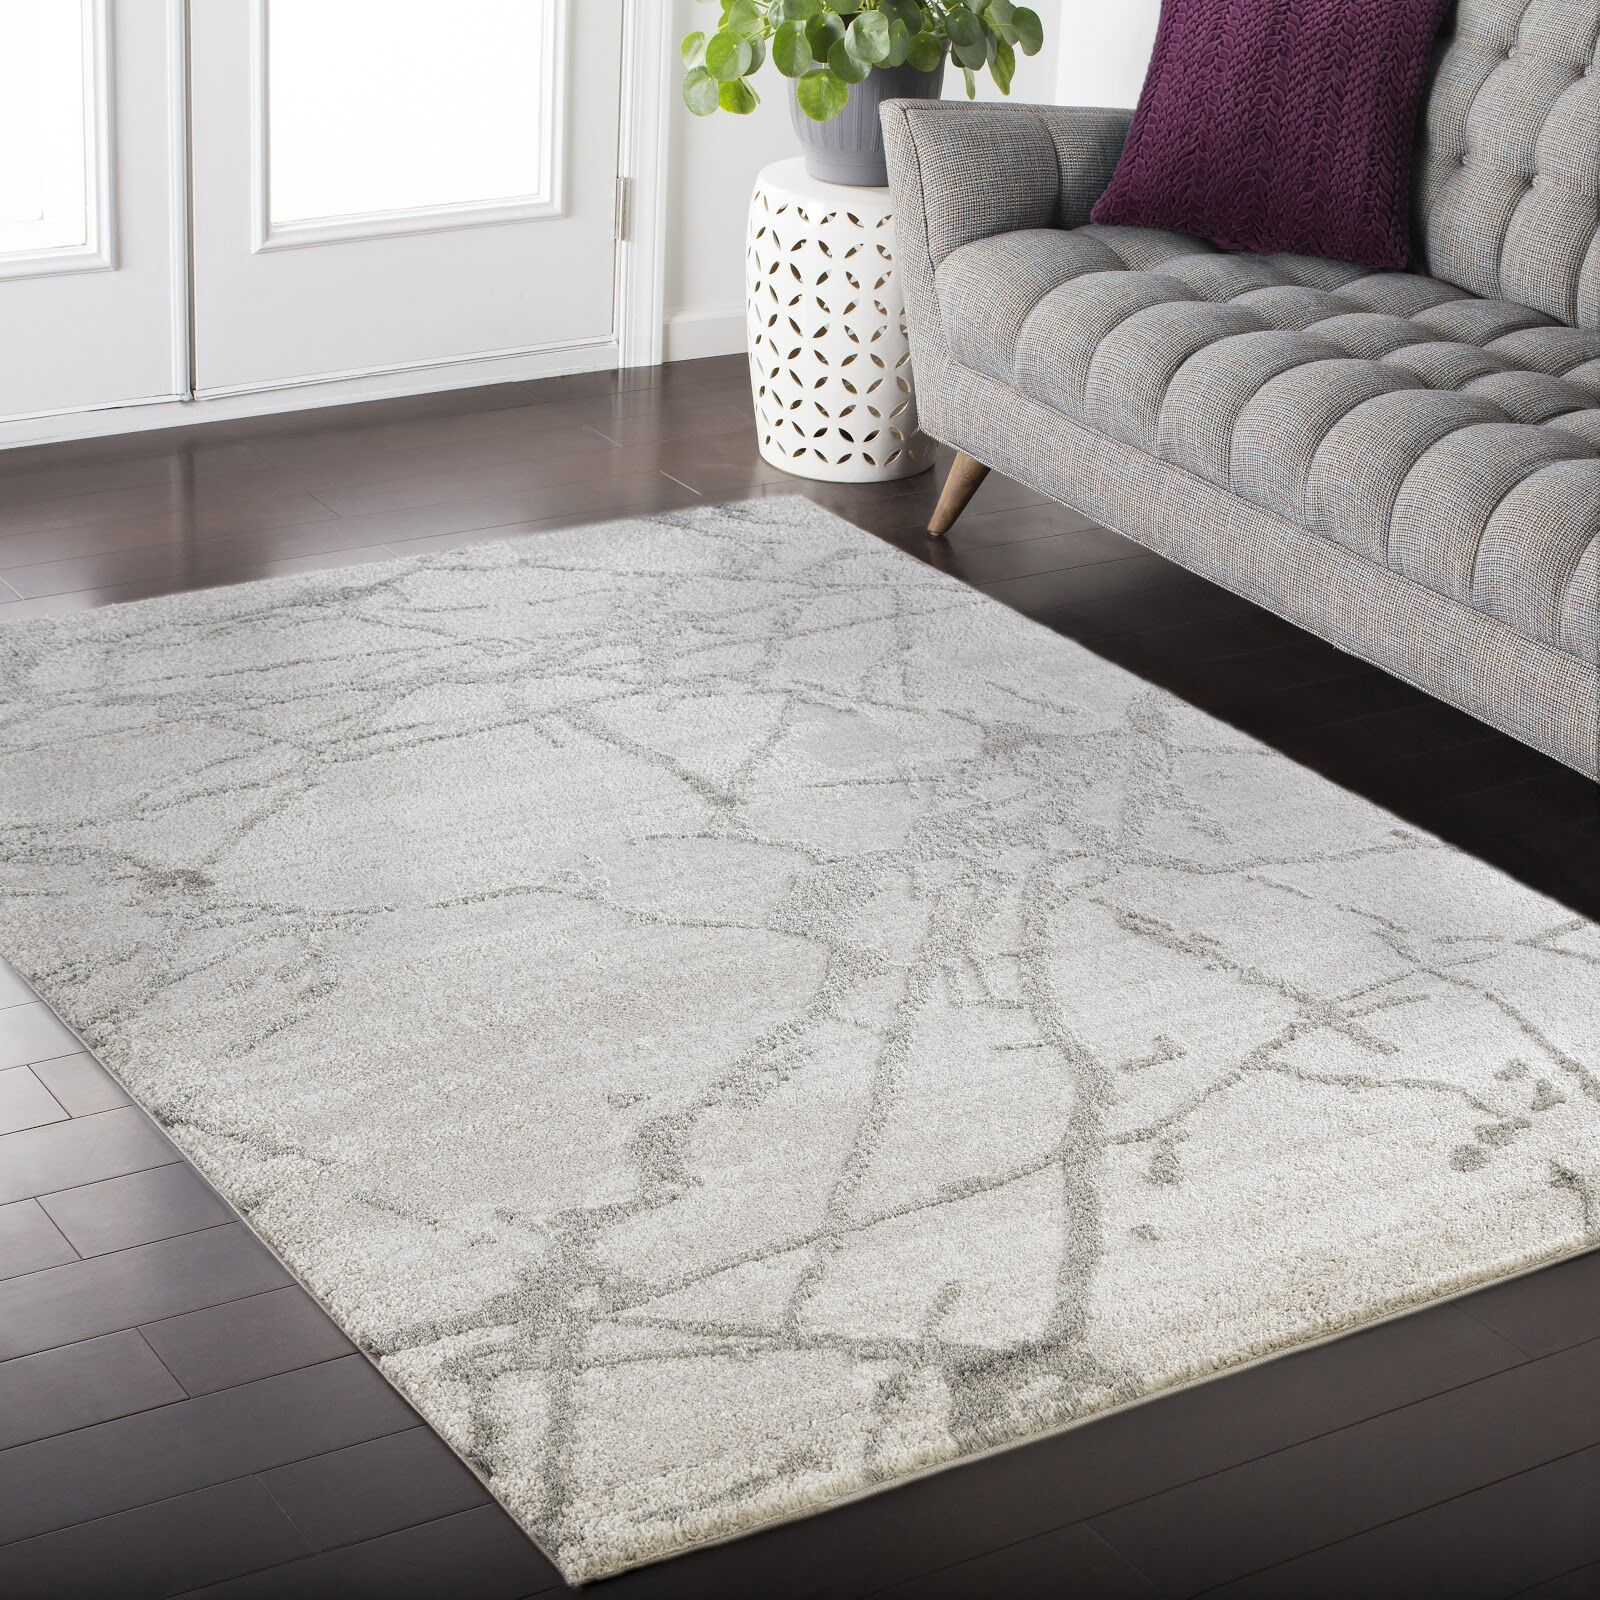 Crider White/Gray Area Rug Rug Size: Rectangle 3'9